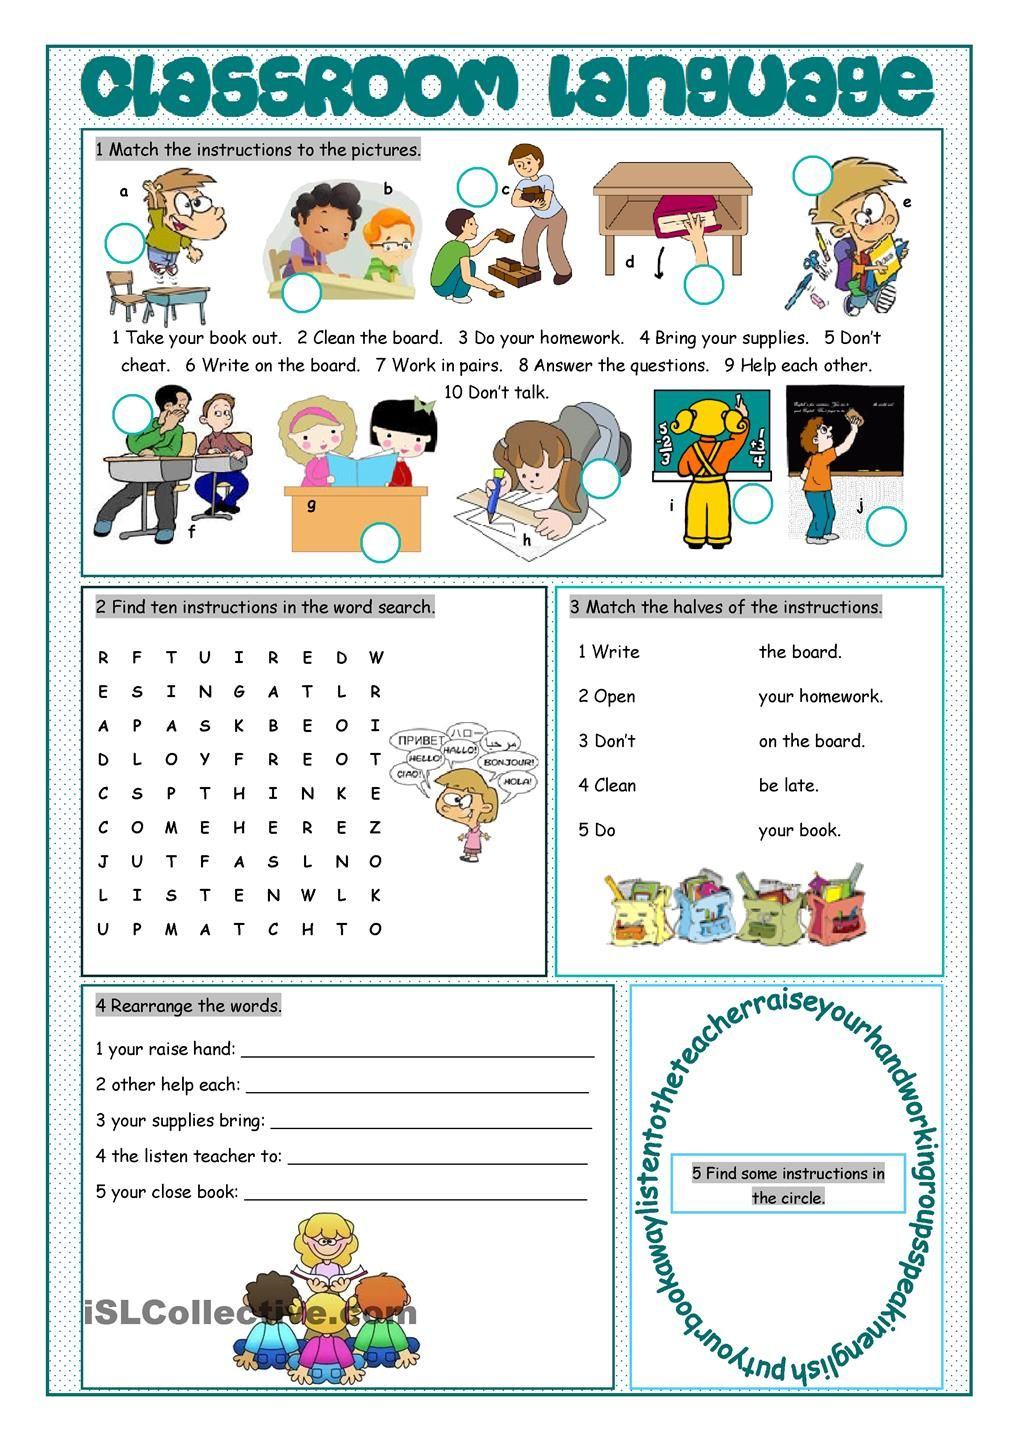 classroom language vocabulary exercises teaching ideas pinterest vocabulary exercises. Black Bedroom Furniture Sets. Home Design Ideas